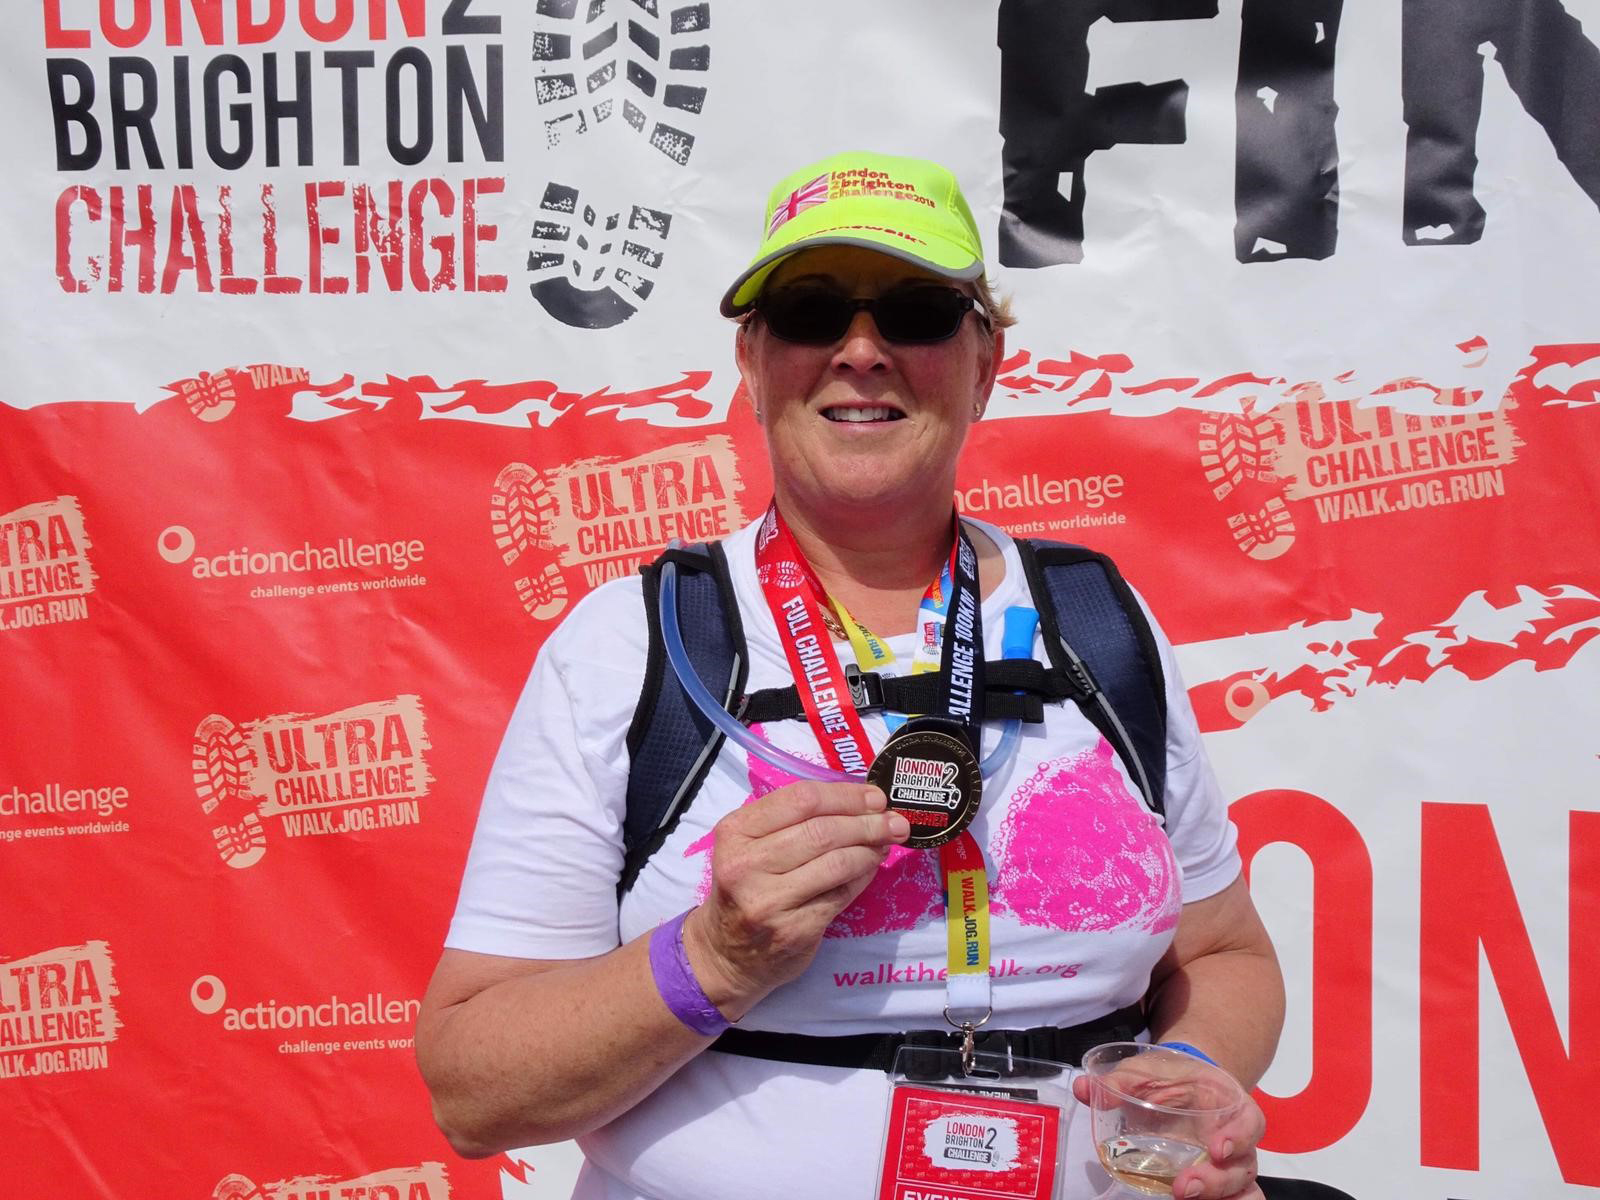 Jane with her London to Brighton medal!